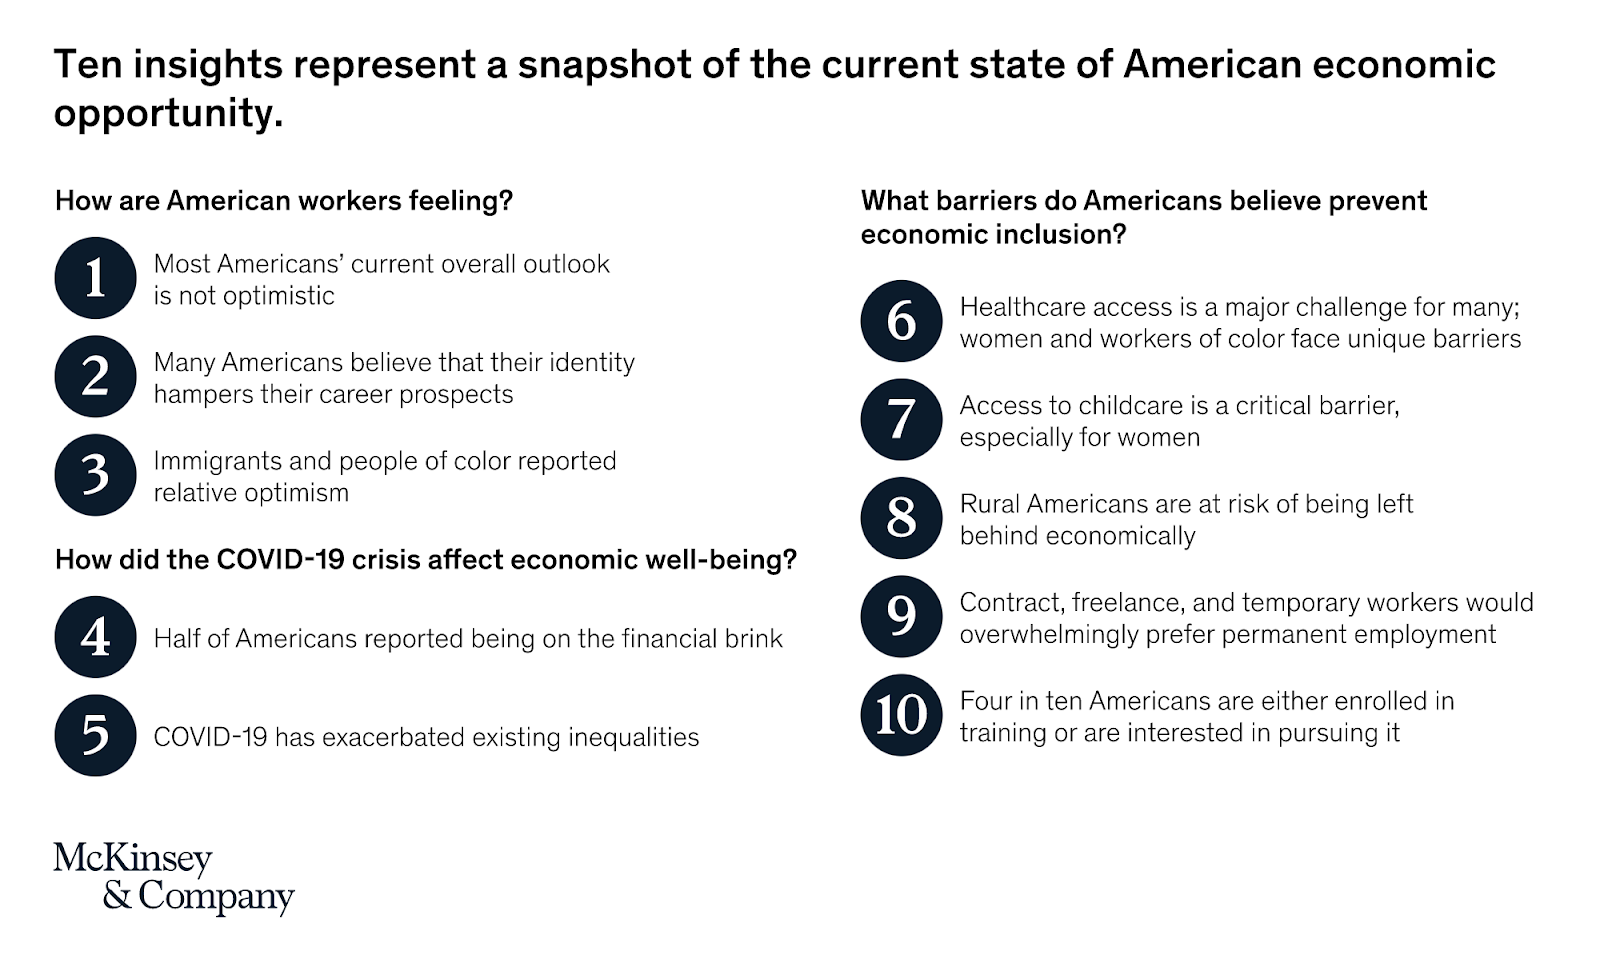 Ten insights of the current state of American opportunity